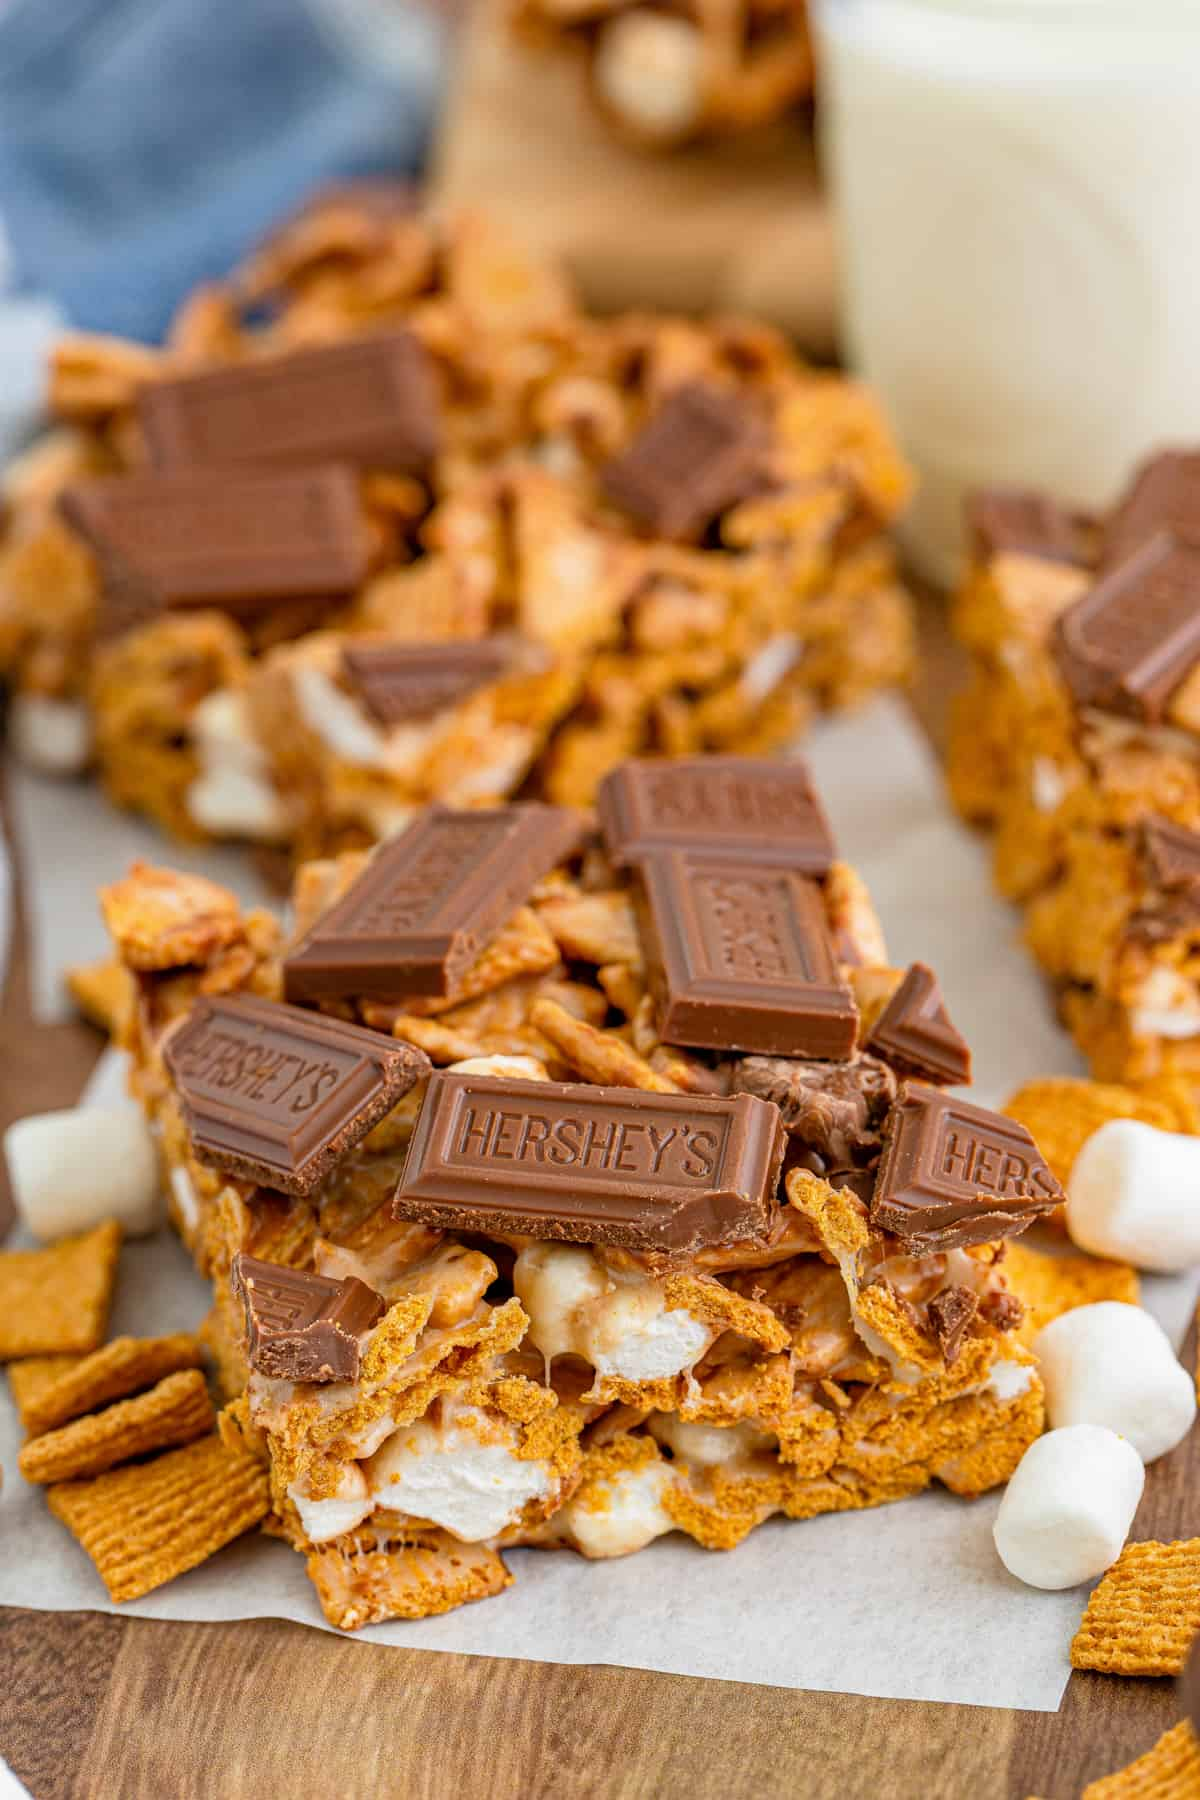 S'mores bars on parchment paper surrounded by marshmallows and Golden Grahams